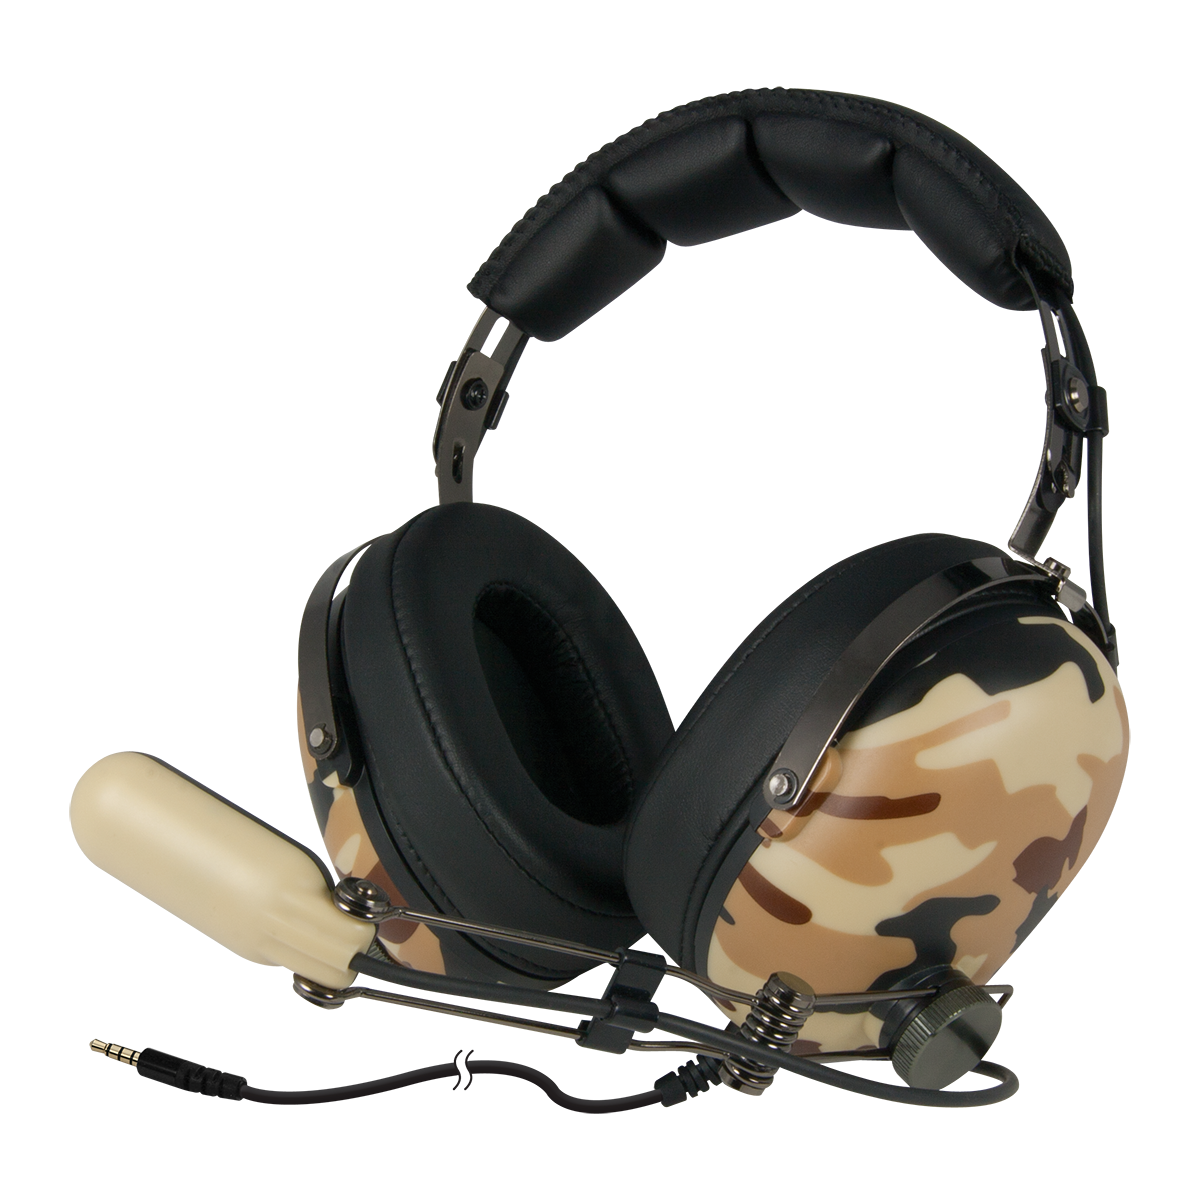 Stereo Gaming Headset with Boom Microphone ARCTIC P533 Military